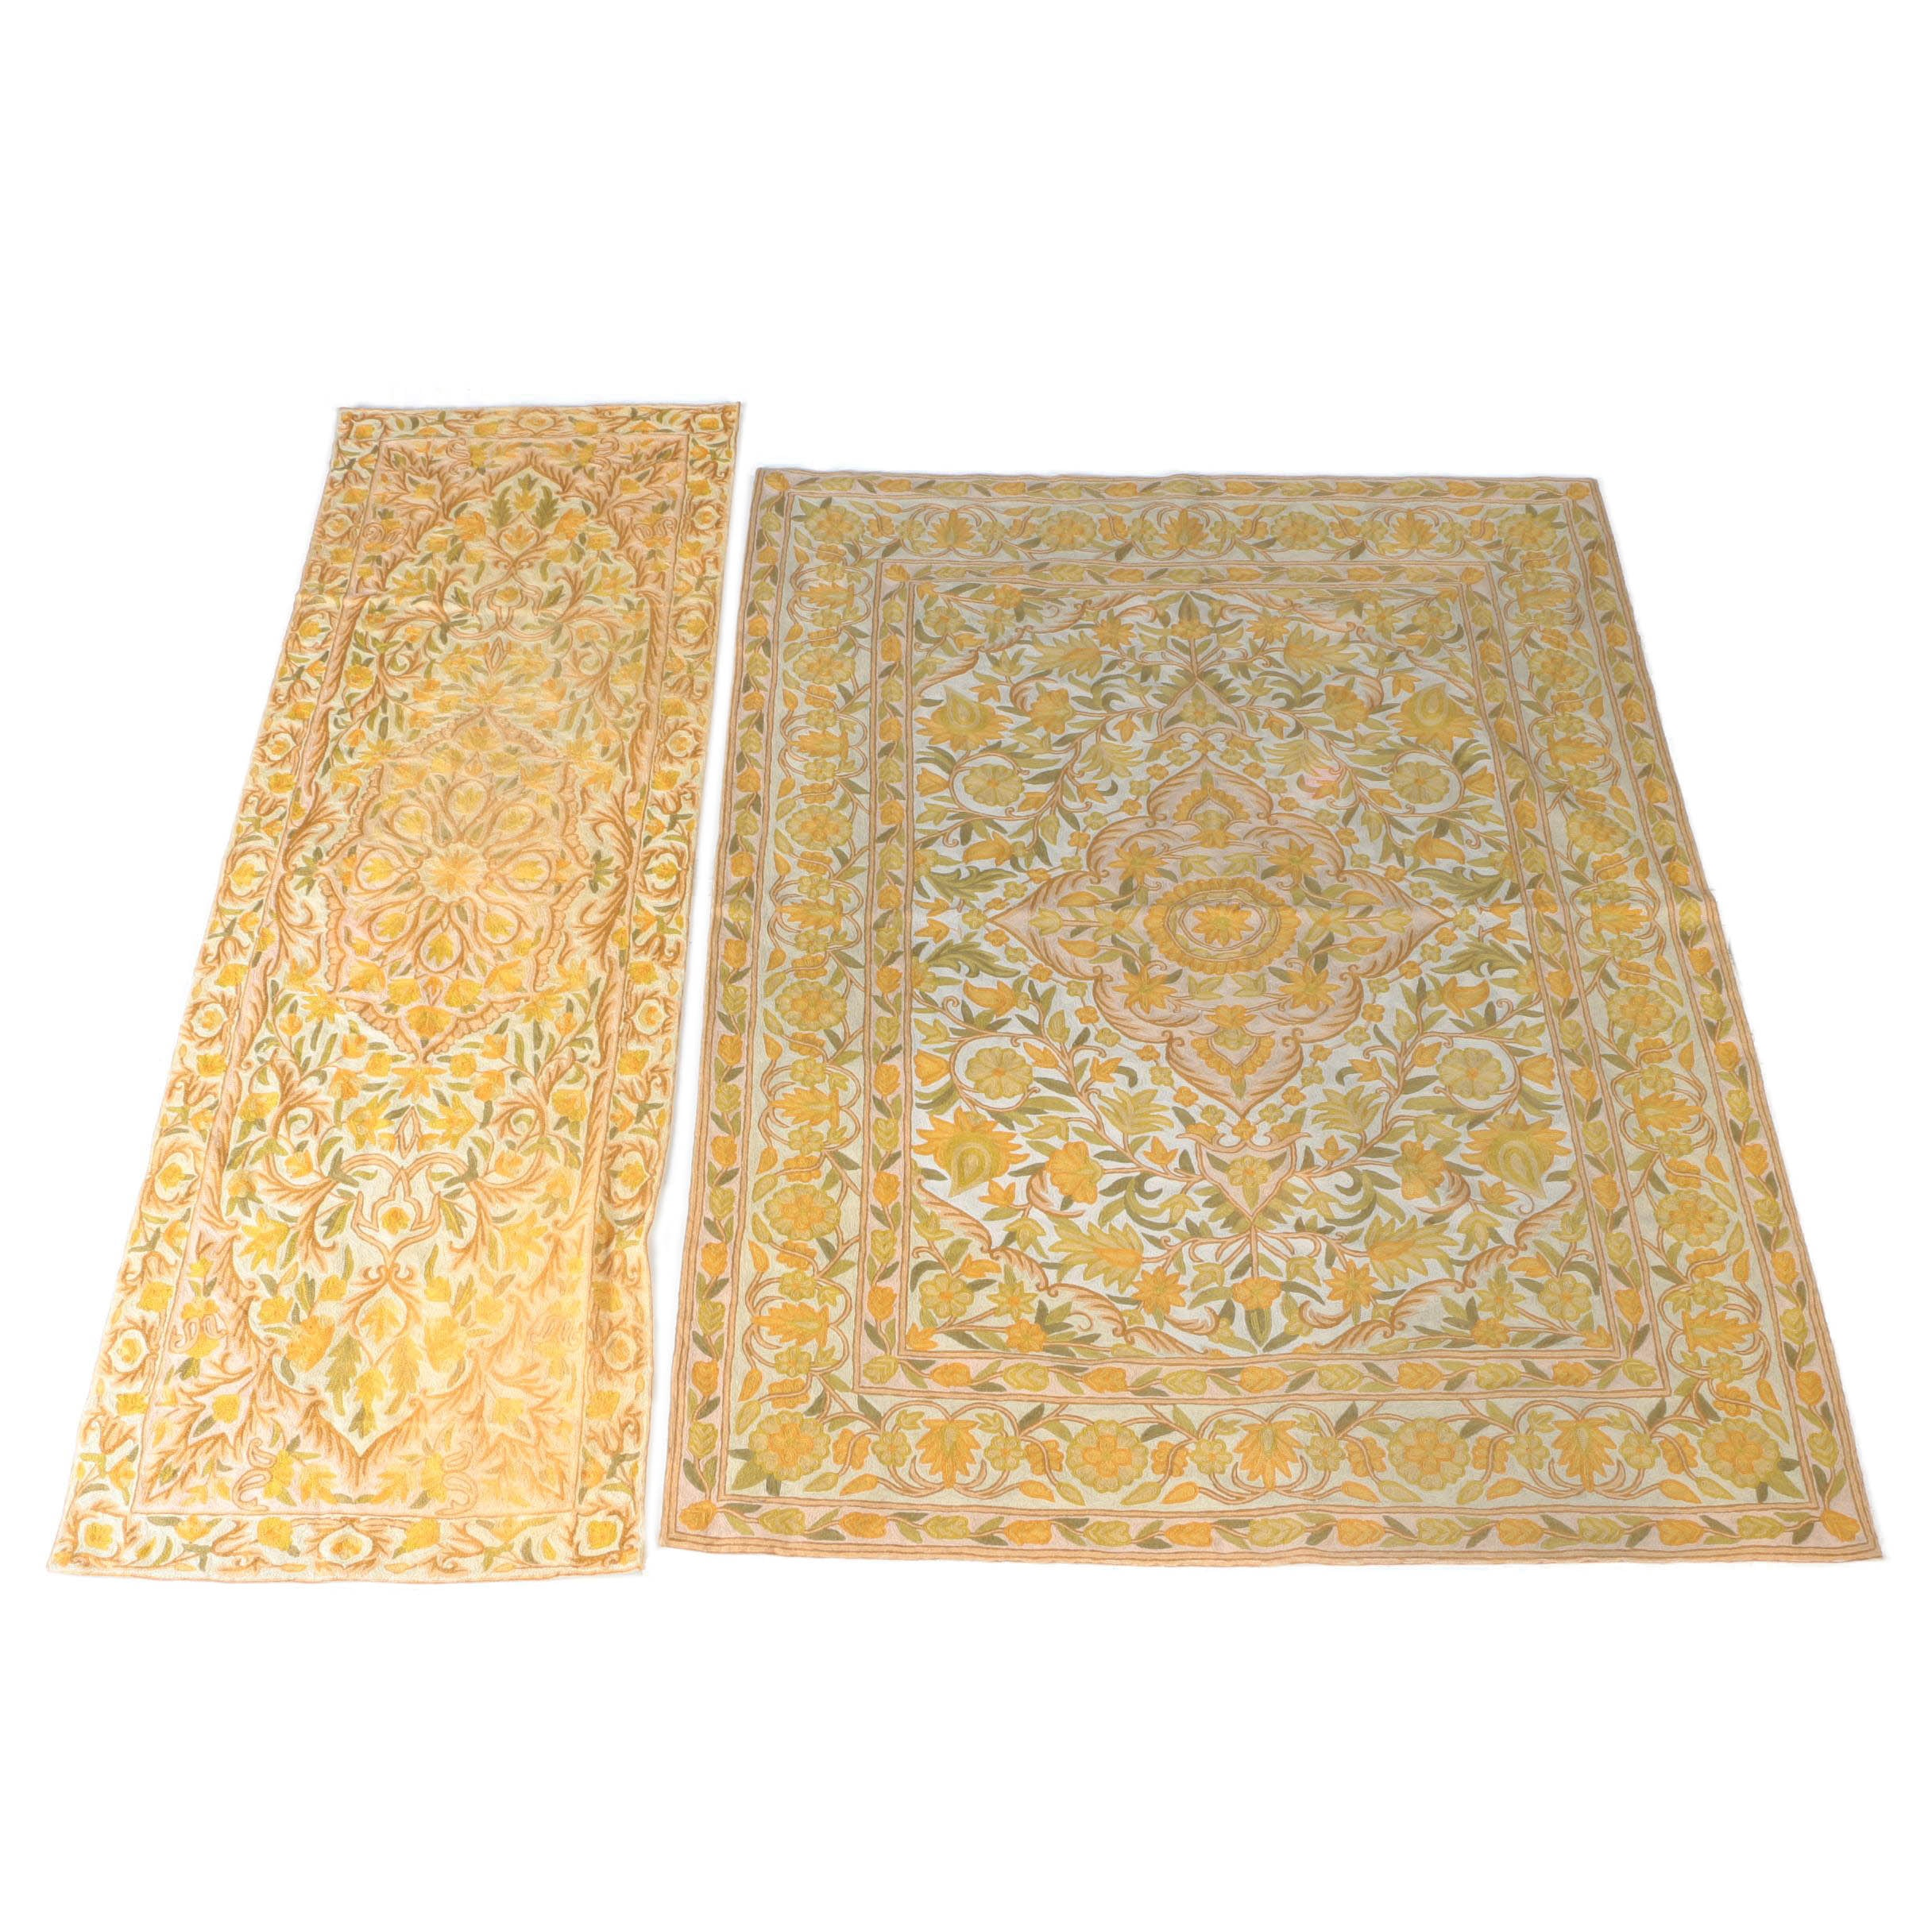 Hand-Embroidered Crewel Work Area Rug and Runner